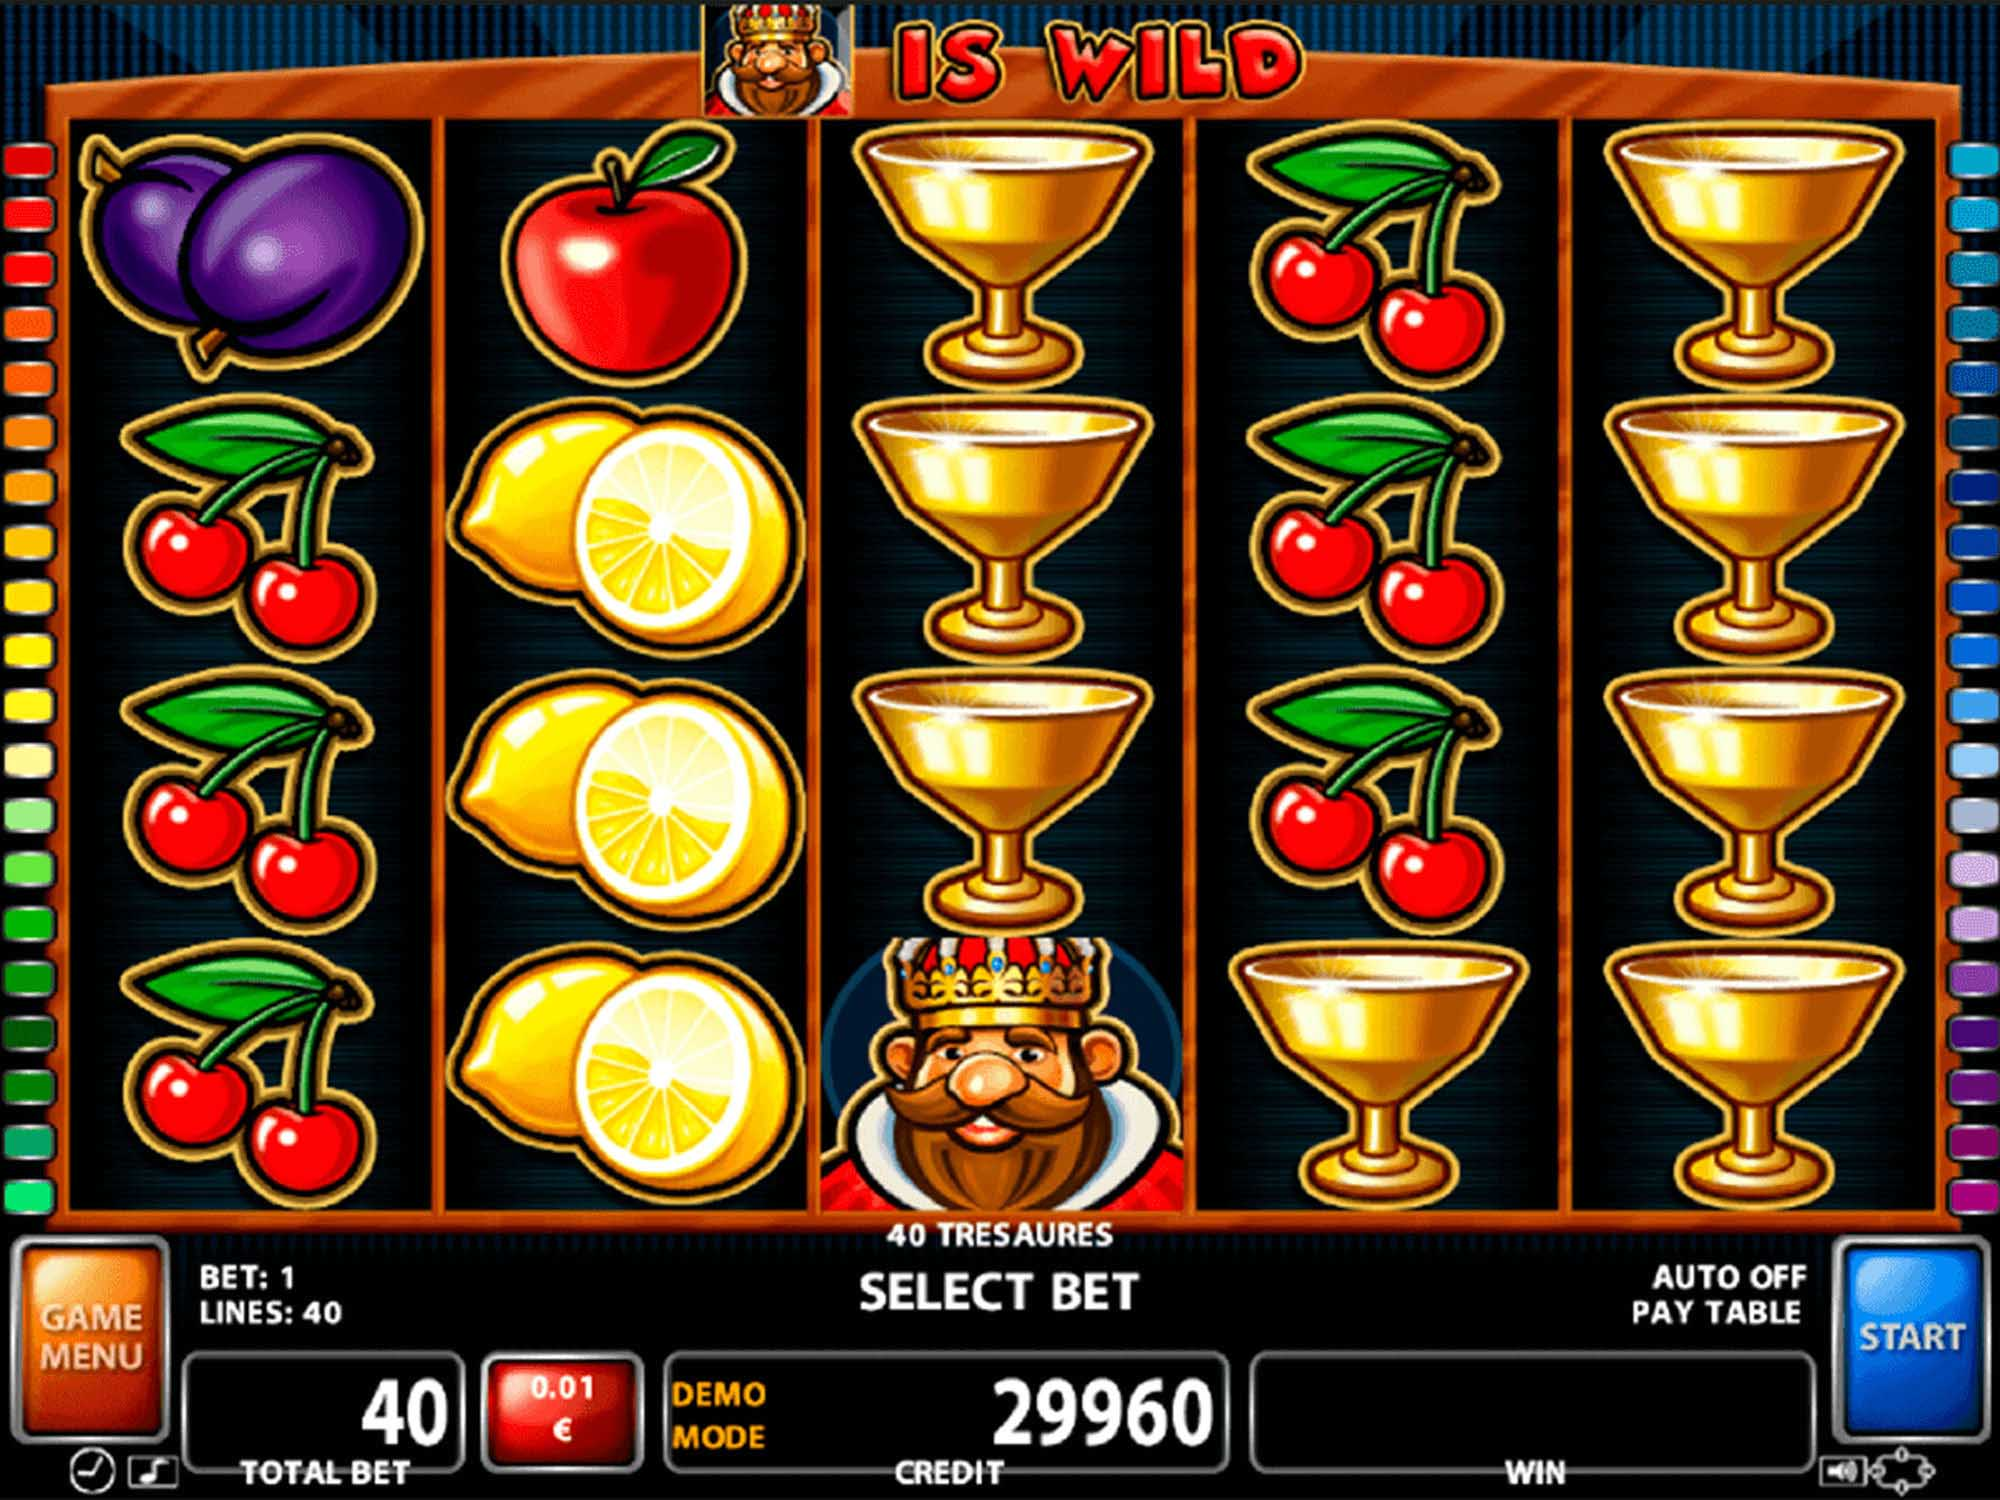 5 treasures slot machine free play